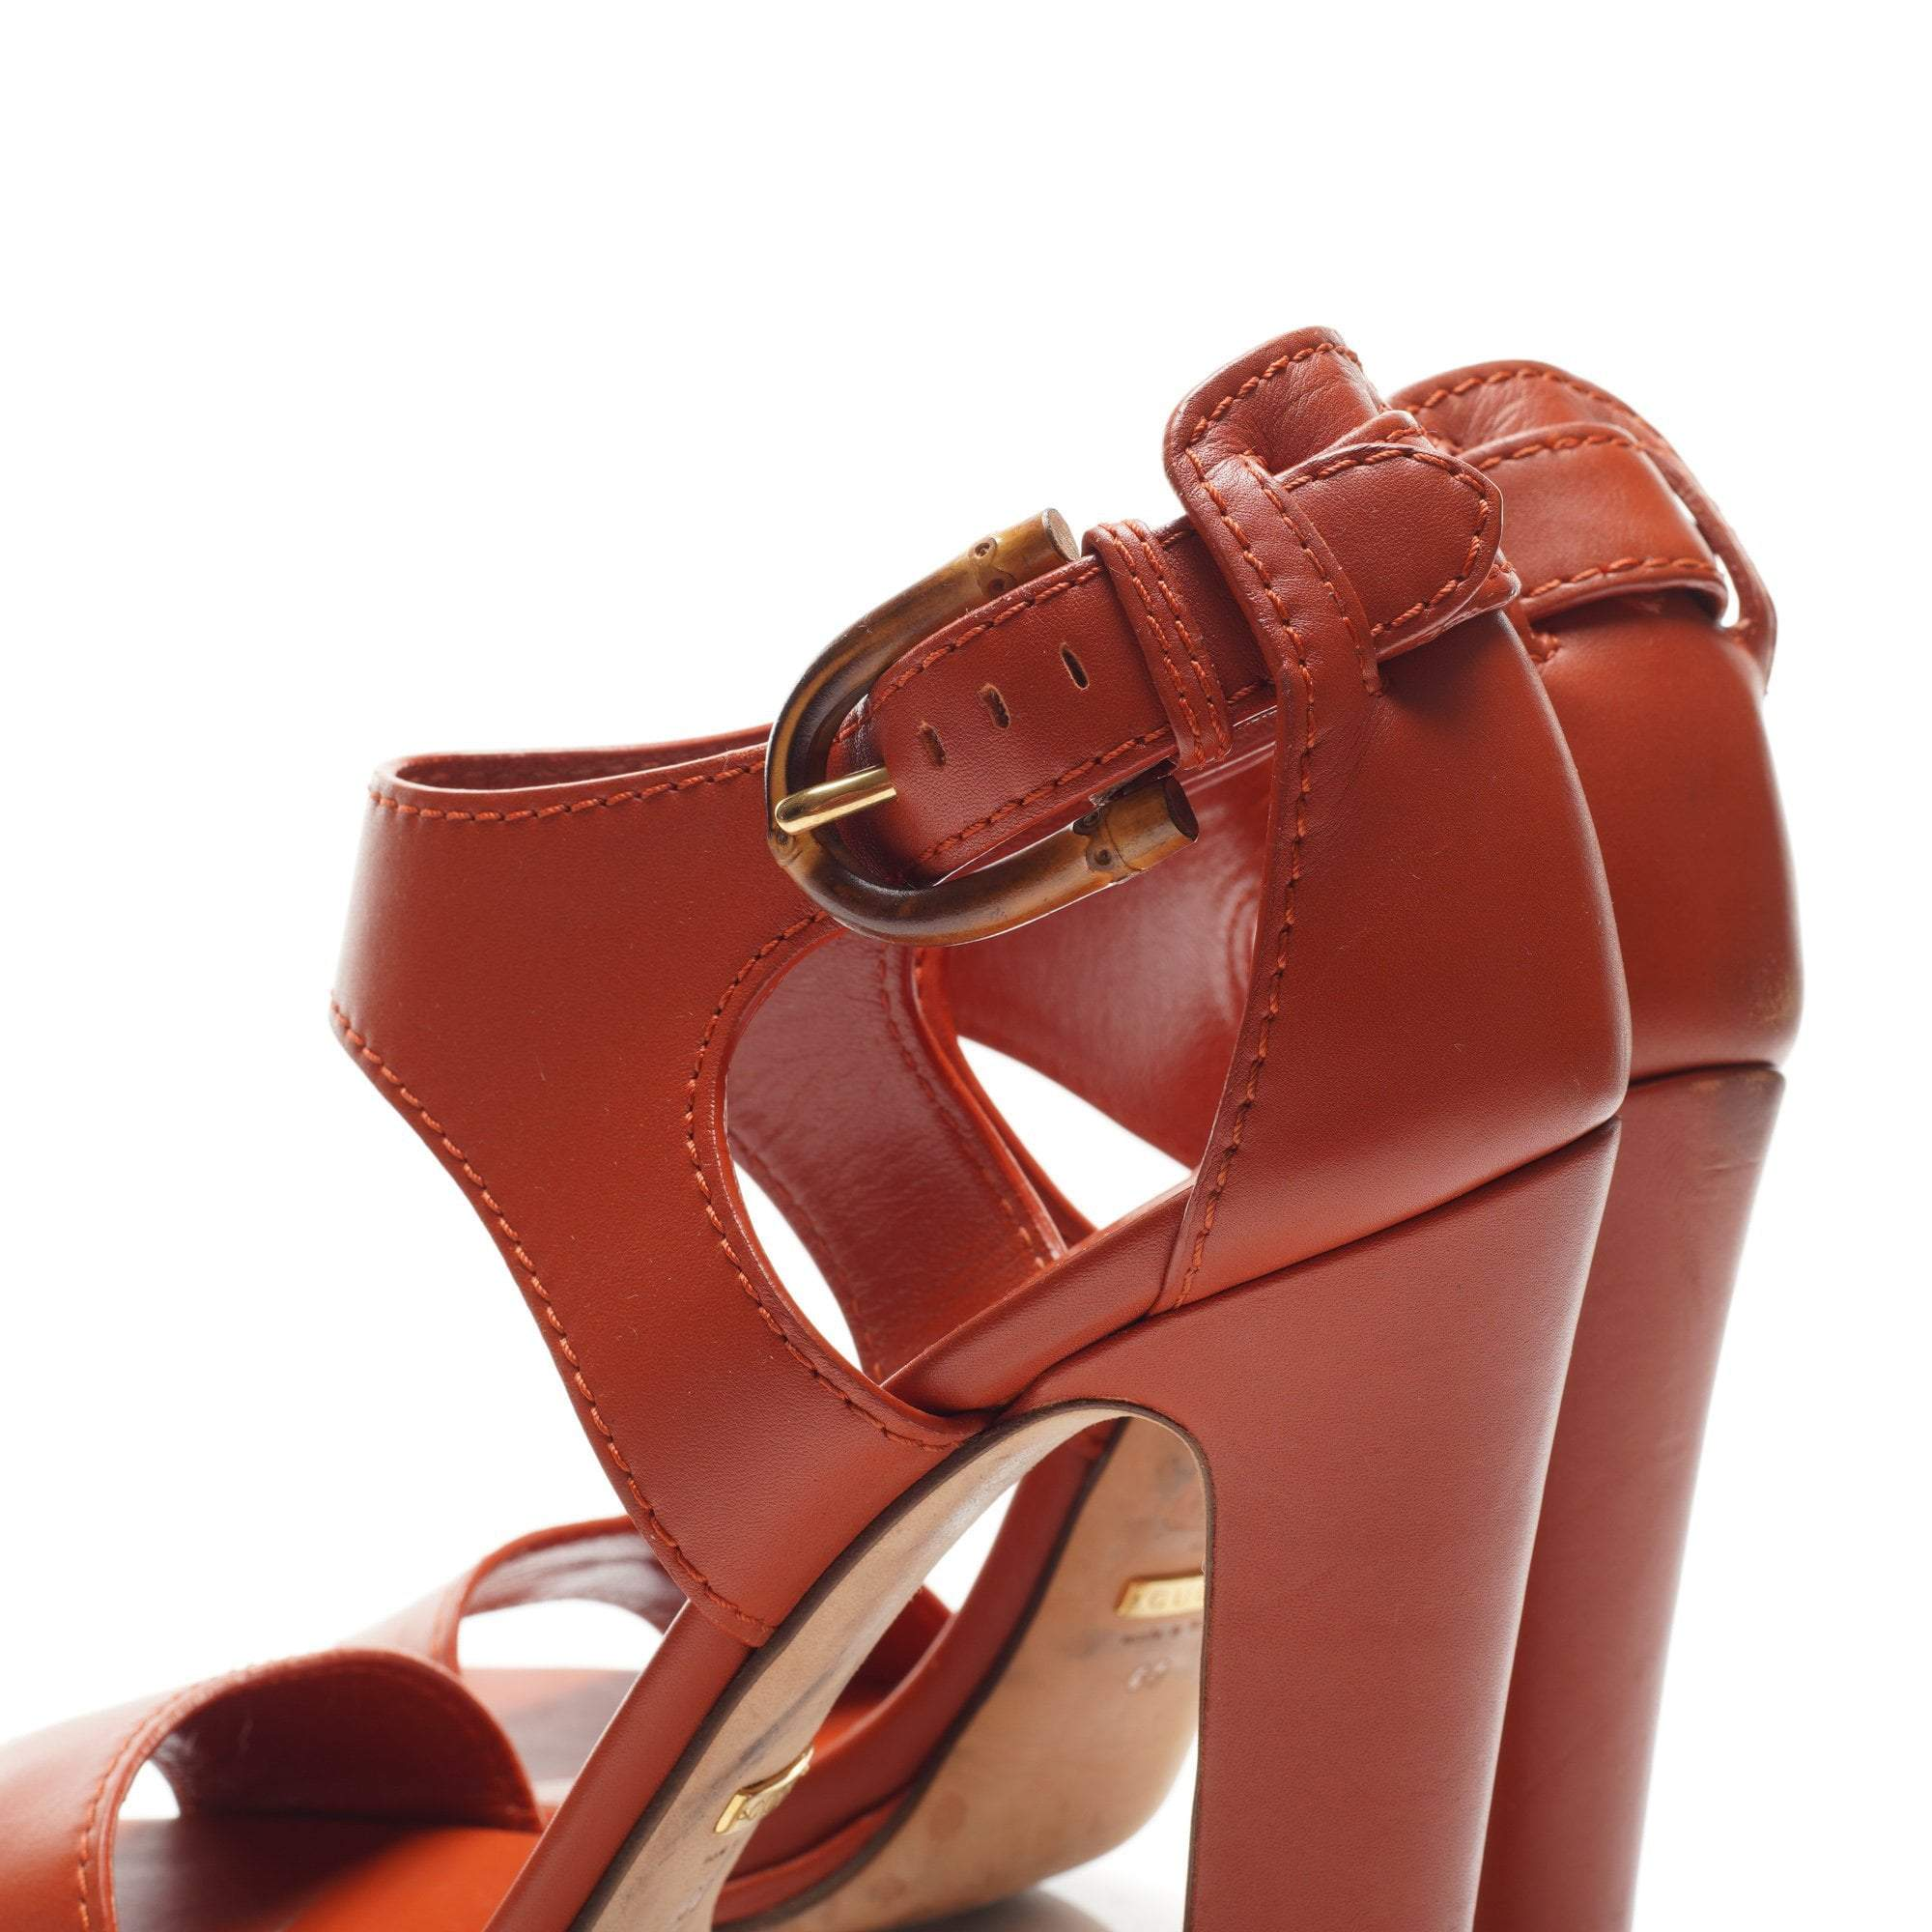 Gucci Tan Bamboo Buckle Heel Sandals